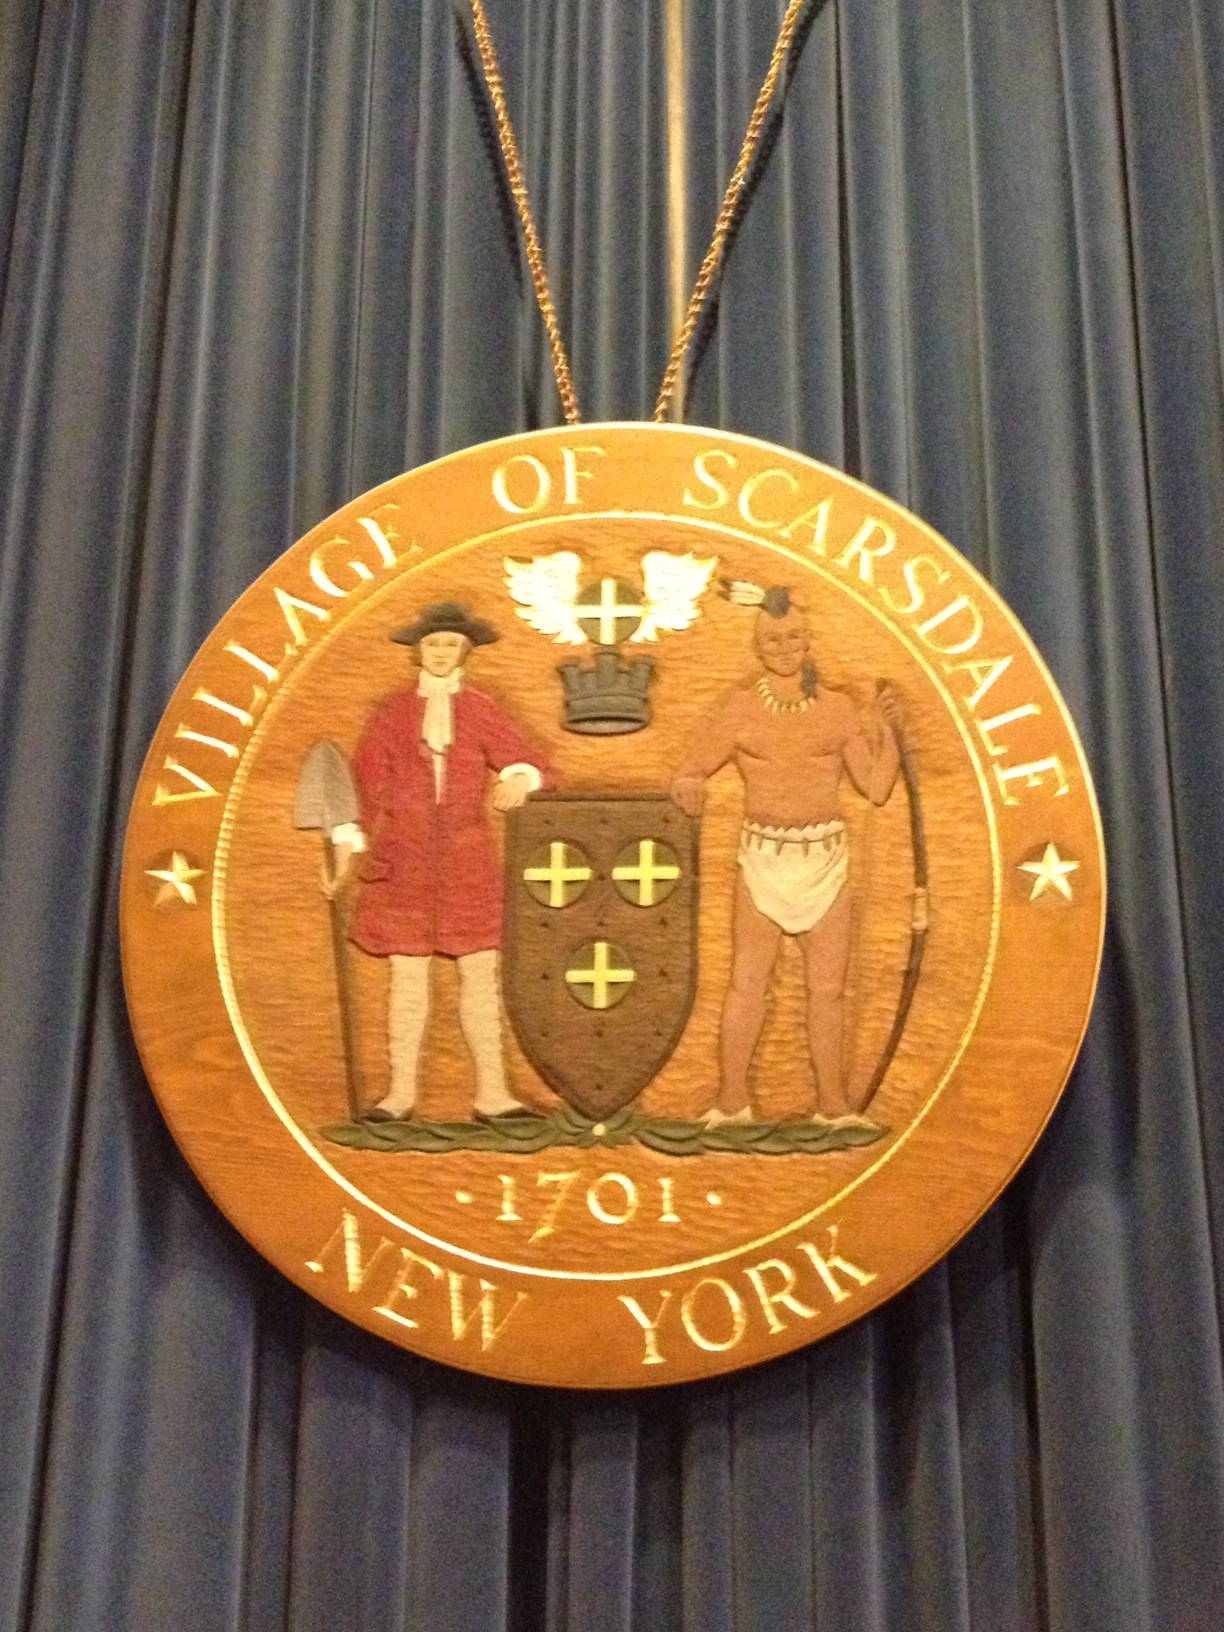 The Scarsdale Village Manager's Office provided an update to residents on Friday.